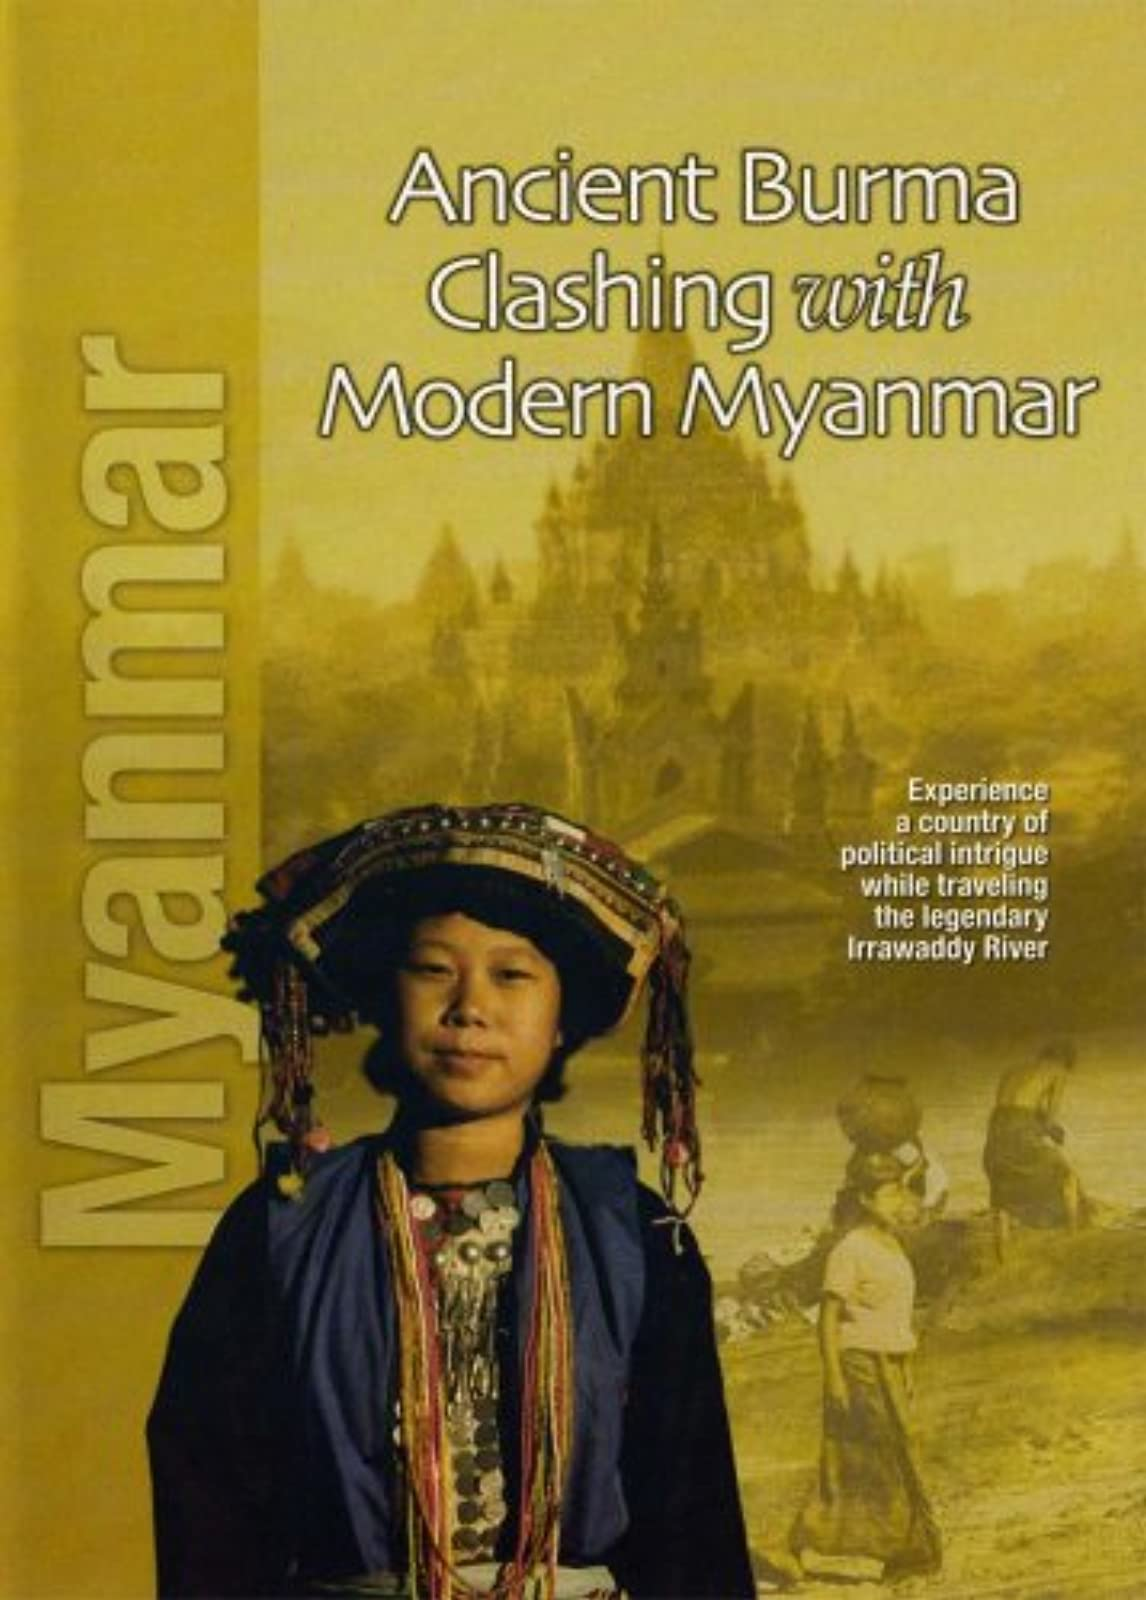 Myanmar: Ancient Burma Clashing With Modern Myanmar On DVD With Cast Of Thousand